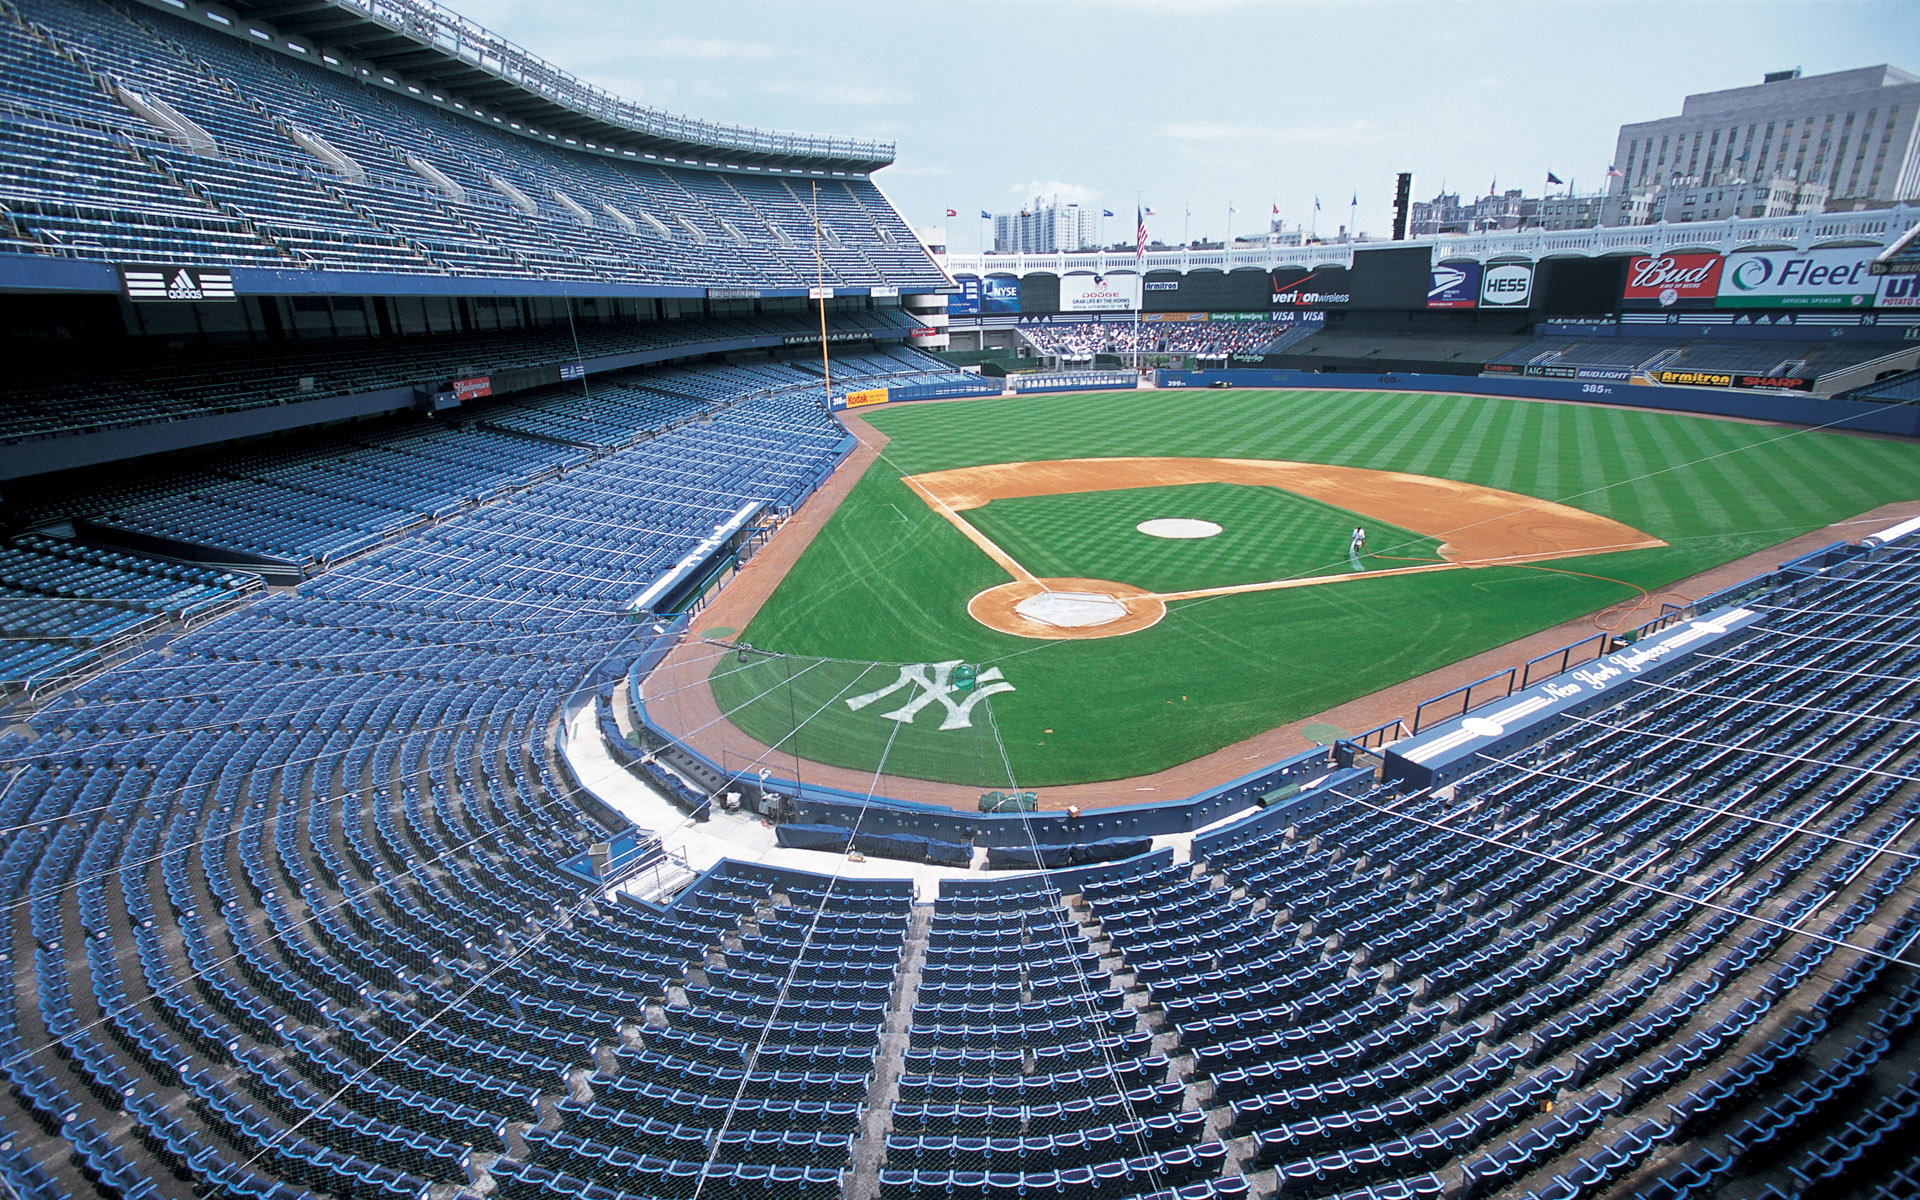 Baseball Stadium New York USA wallpapers and images   wallpapers 1920x1200